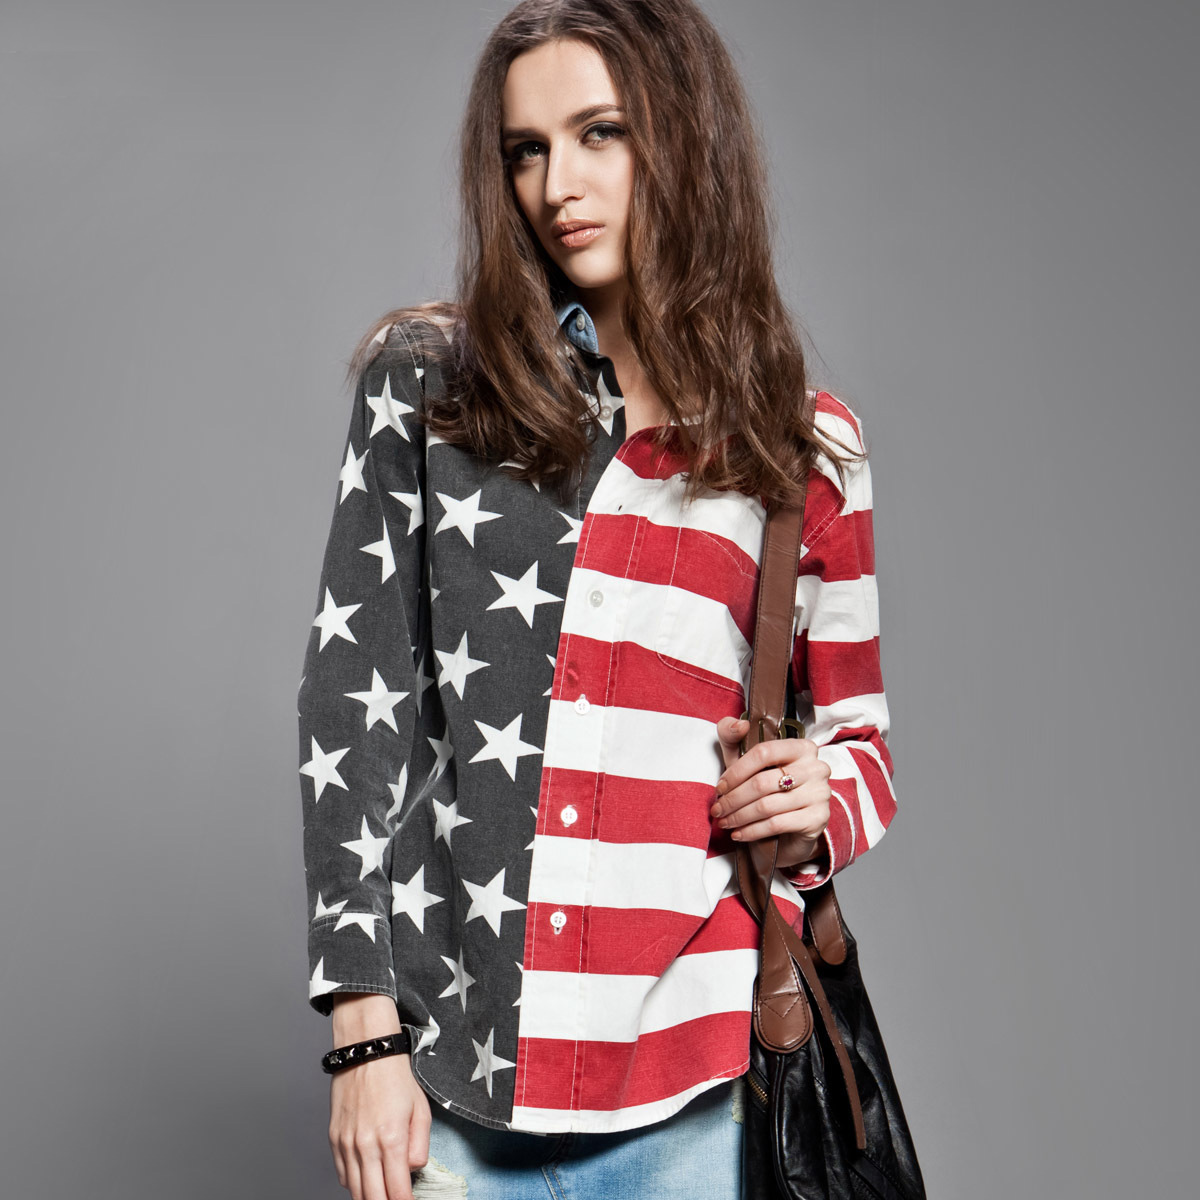 Othercrazy stars and stripes long sleeve shirt code: 20123634